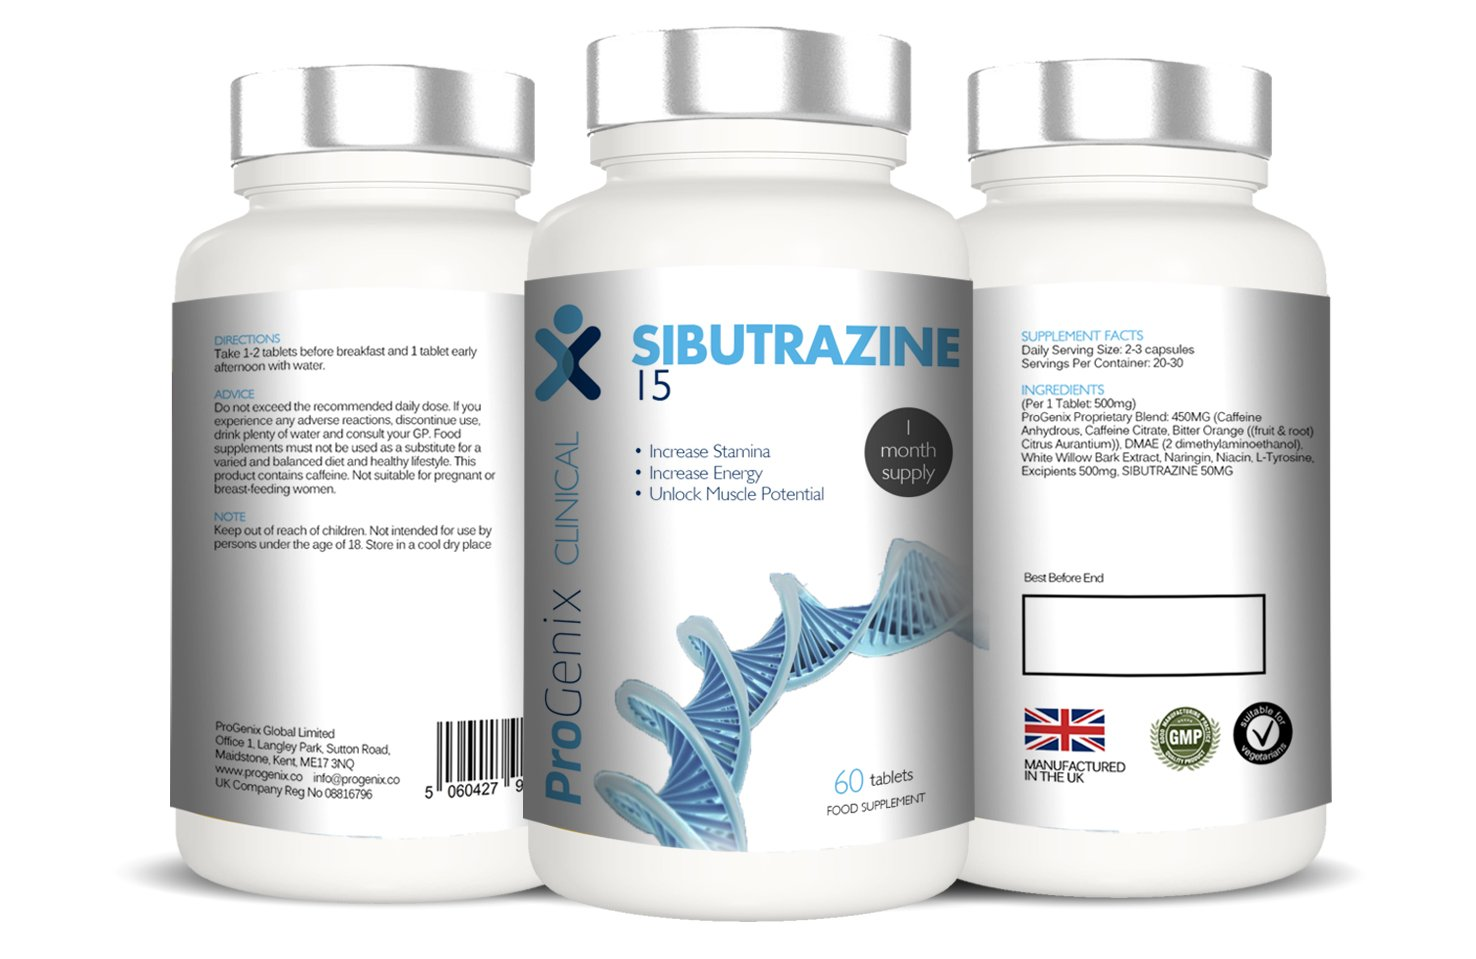 Sibutrazine Xtreme Fat Burner Appetite Suppressant Pills Weight Loss Diet Slimming Aid 180 Tablets 100 Moneyback Guarantee